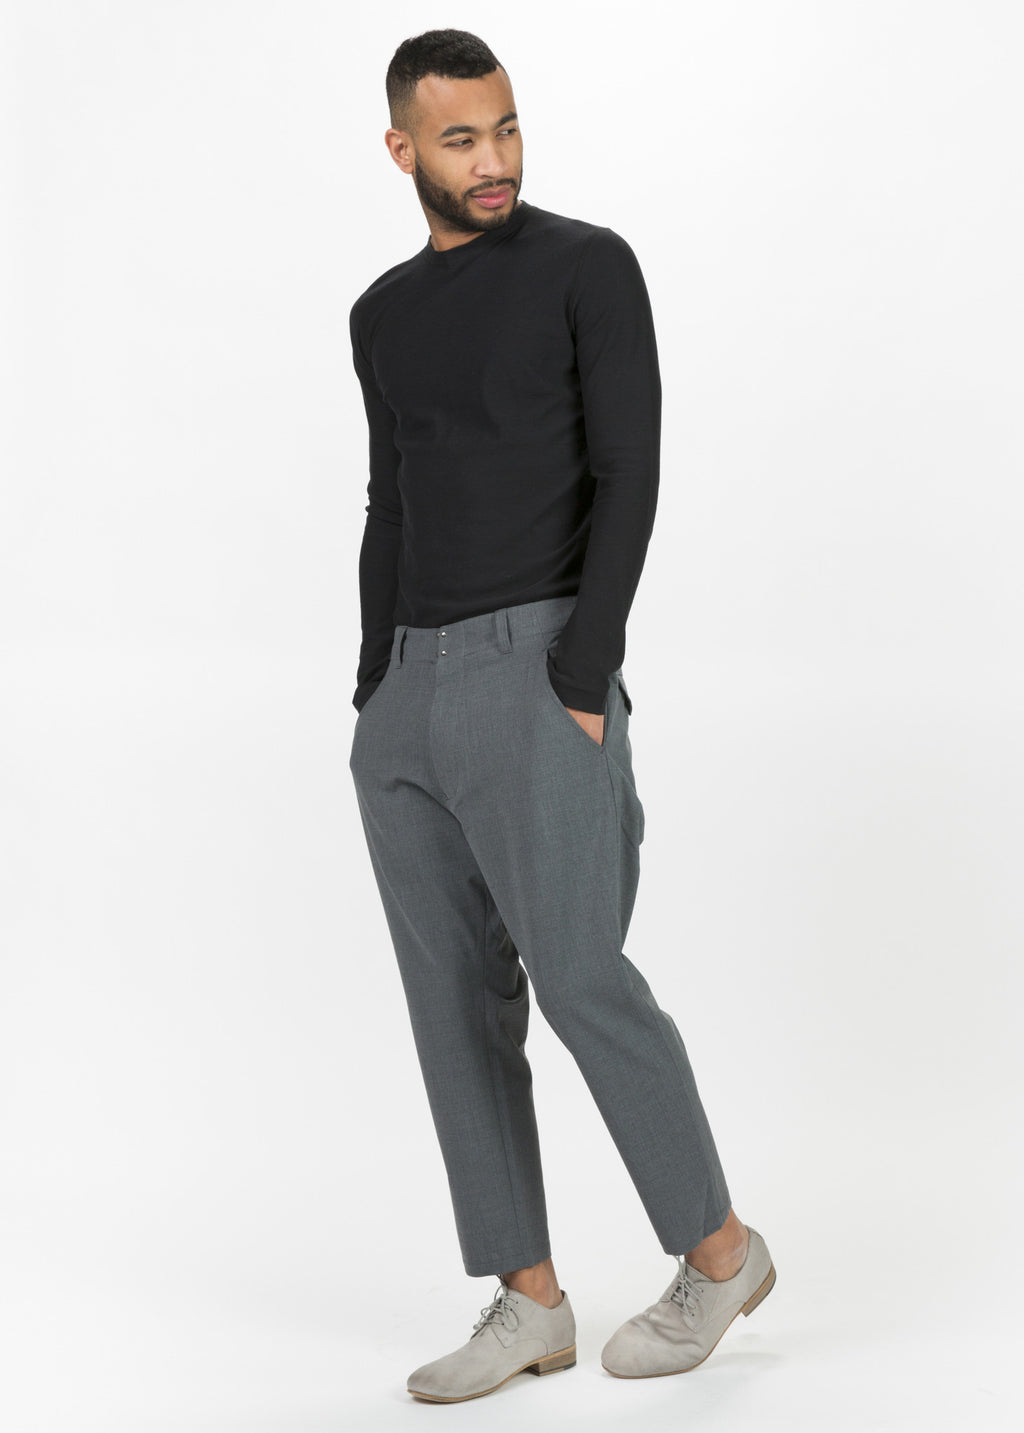 Drop Crotch Dress Pant